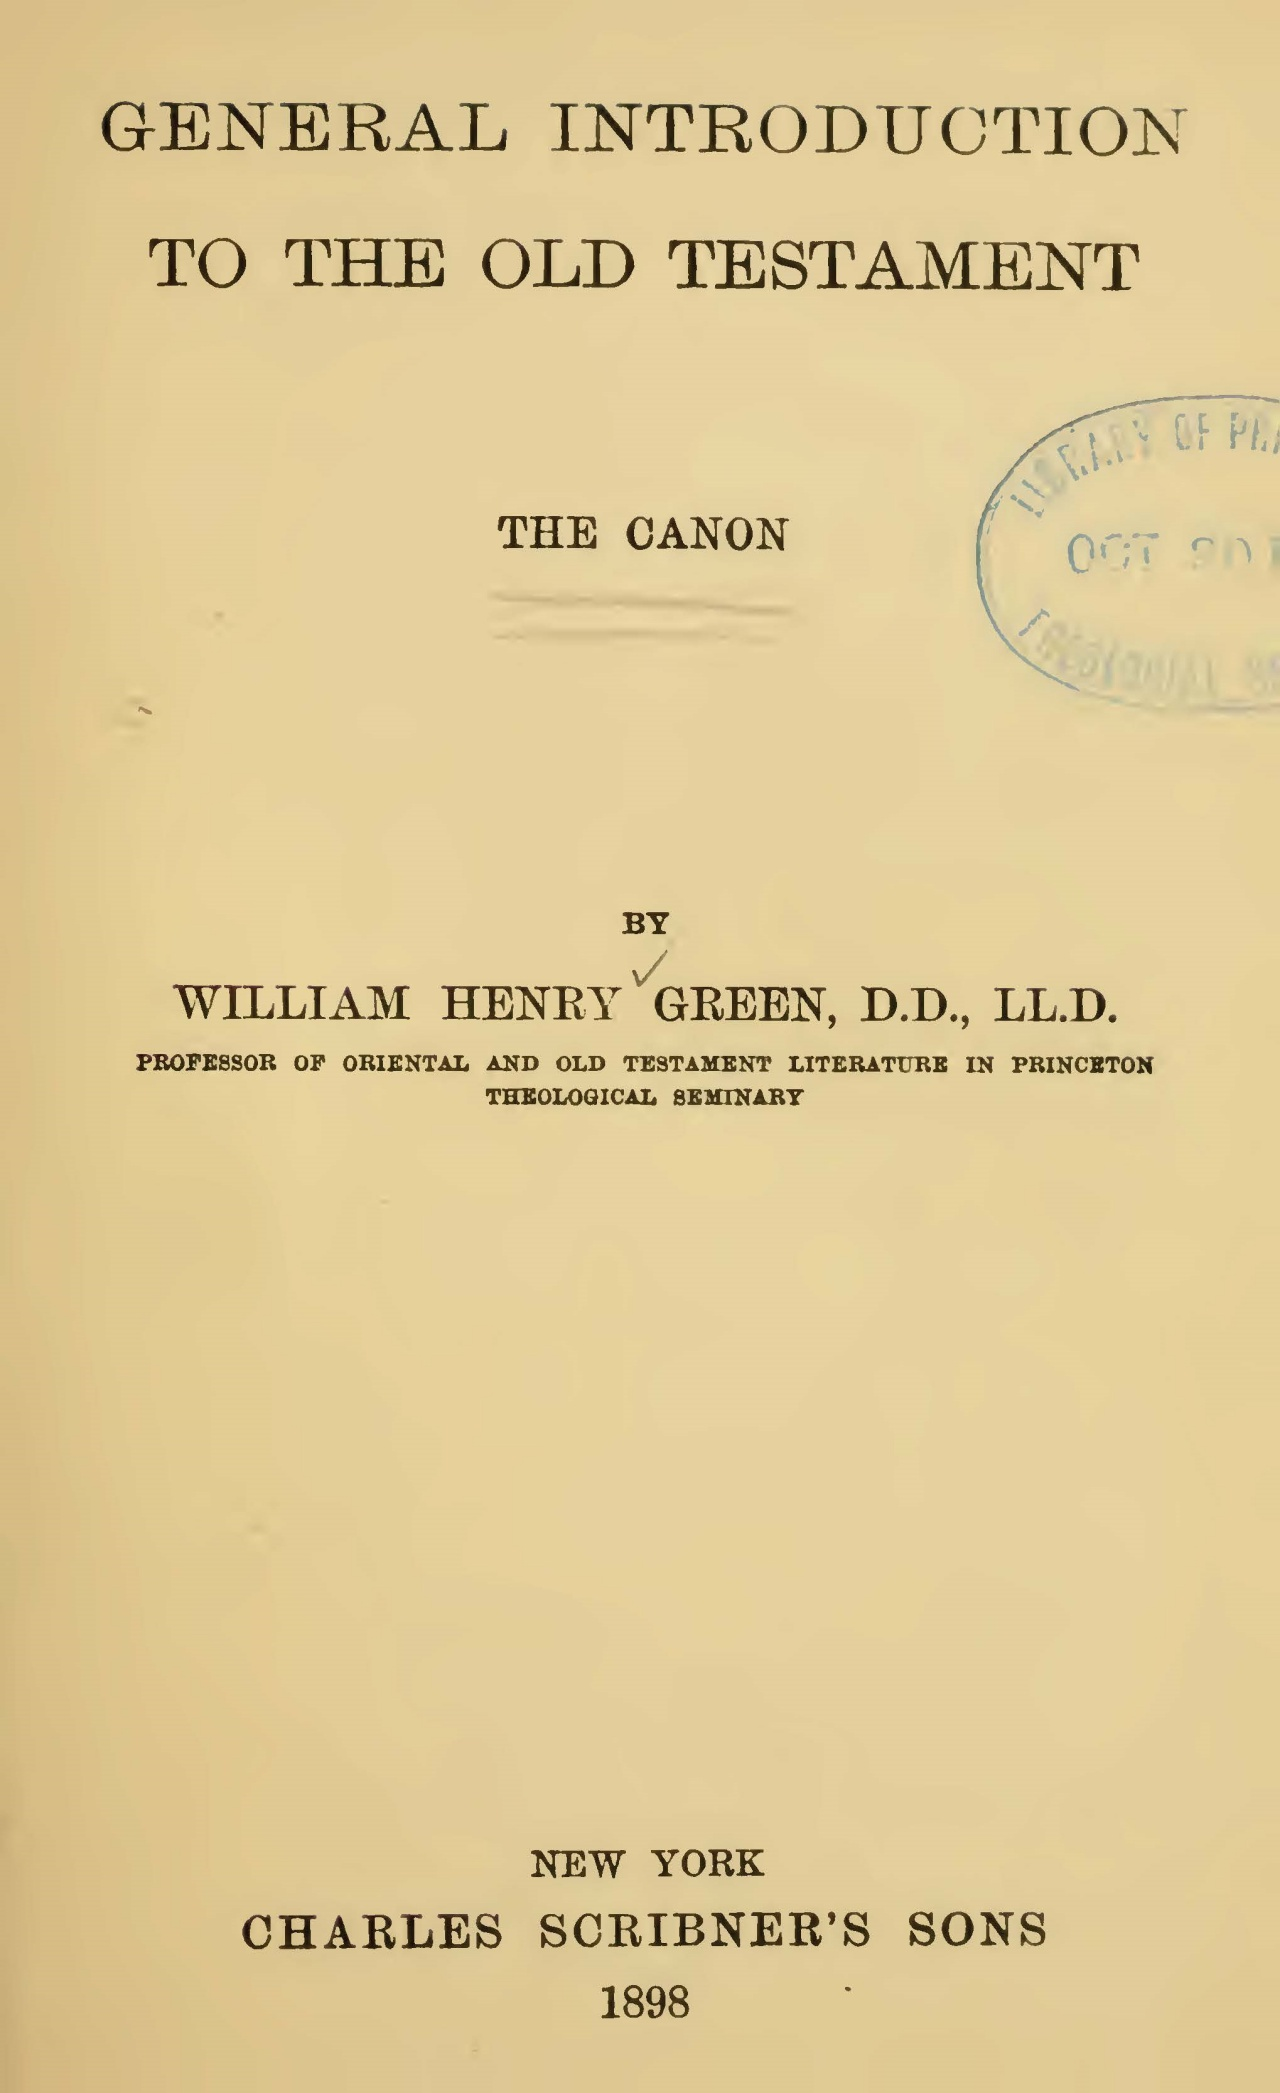 Green, William Henry, General Introduction to the Old Testament The Canon Title Page.jpg